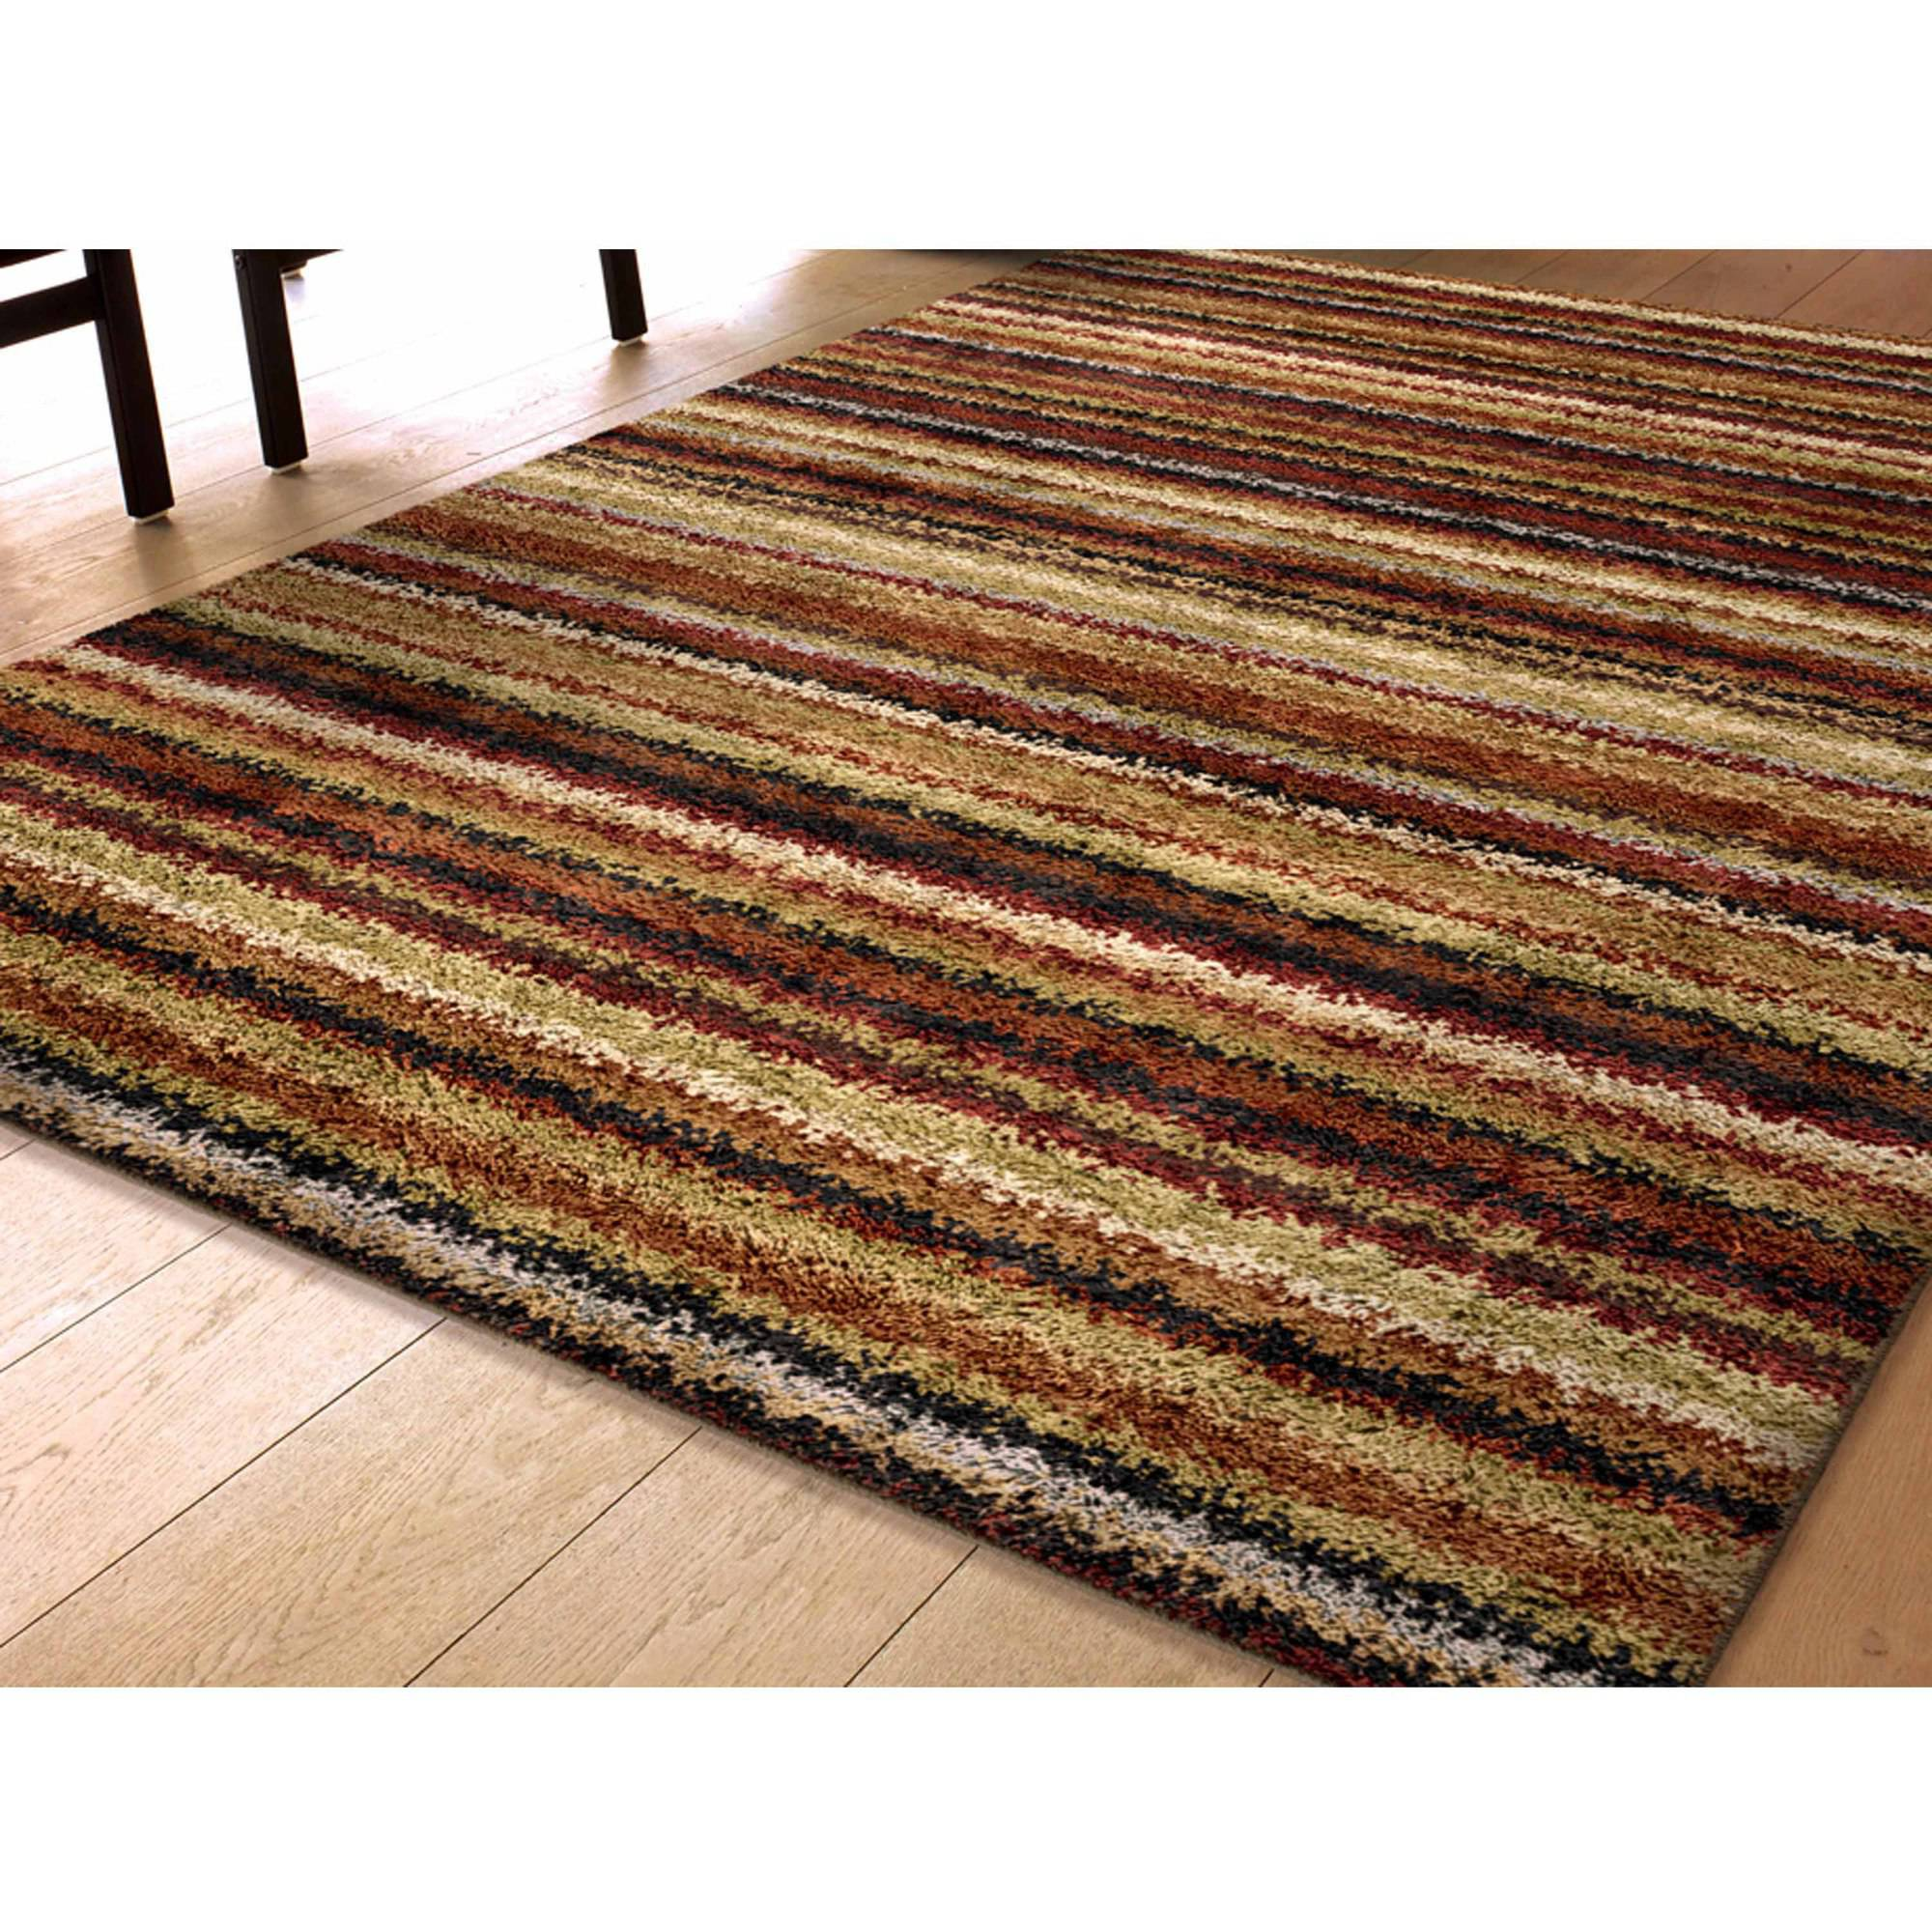 Orian Rugs Shag Greenwhich Multi Colored Area Rug